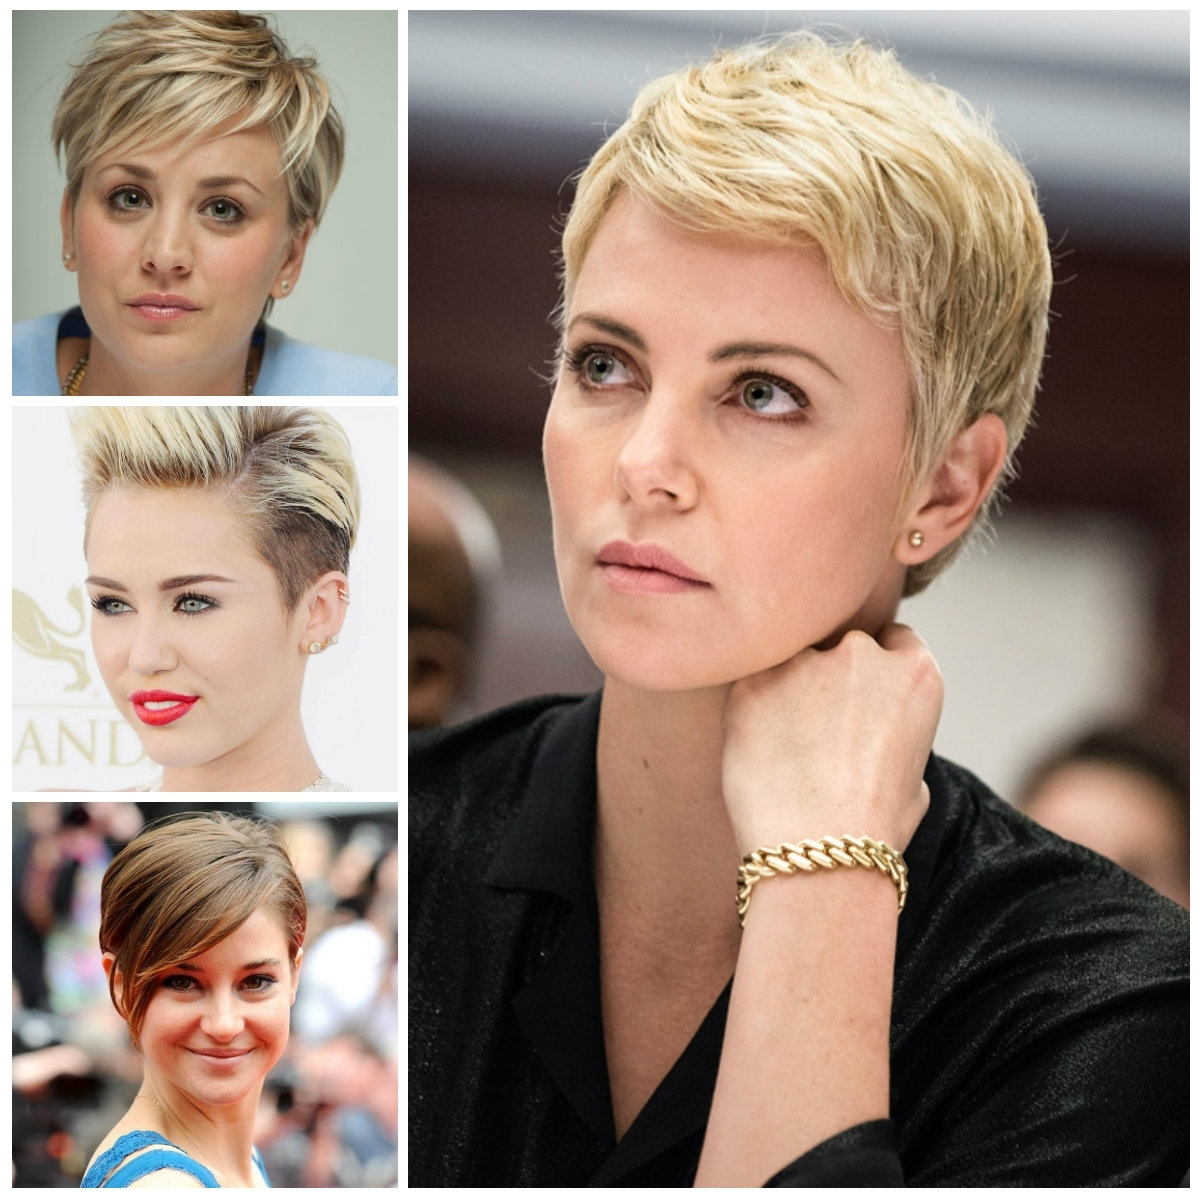 Very Short Pixie Hairstyles 2017 14 With Very Short Pixie Within Most Current Long To Short Pixie Hairstyles (View 2 of 16)